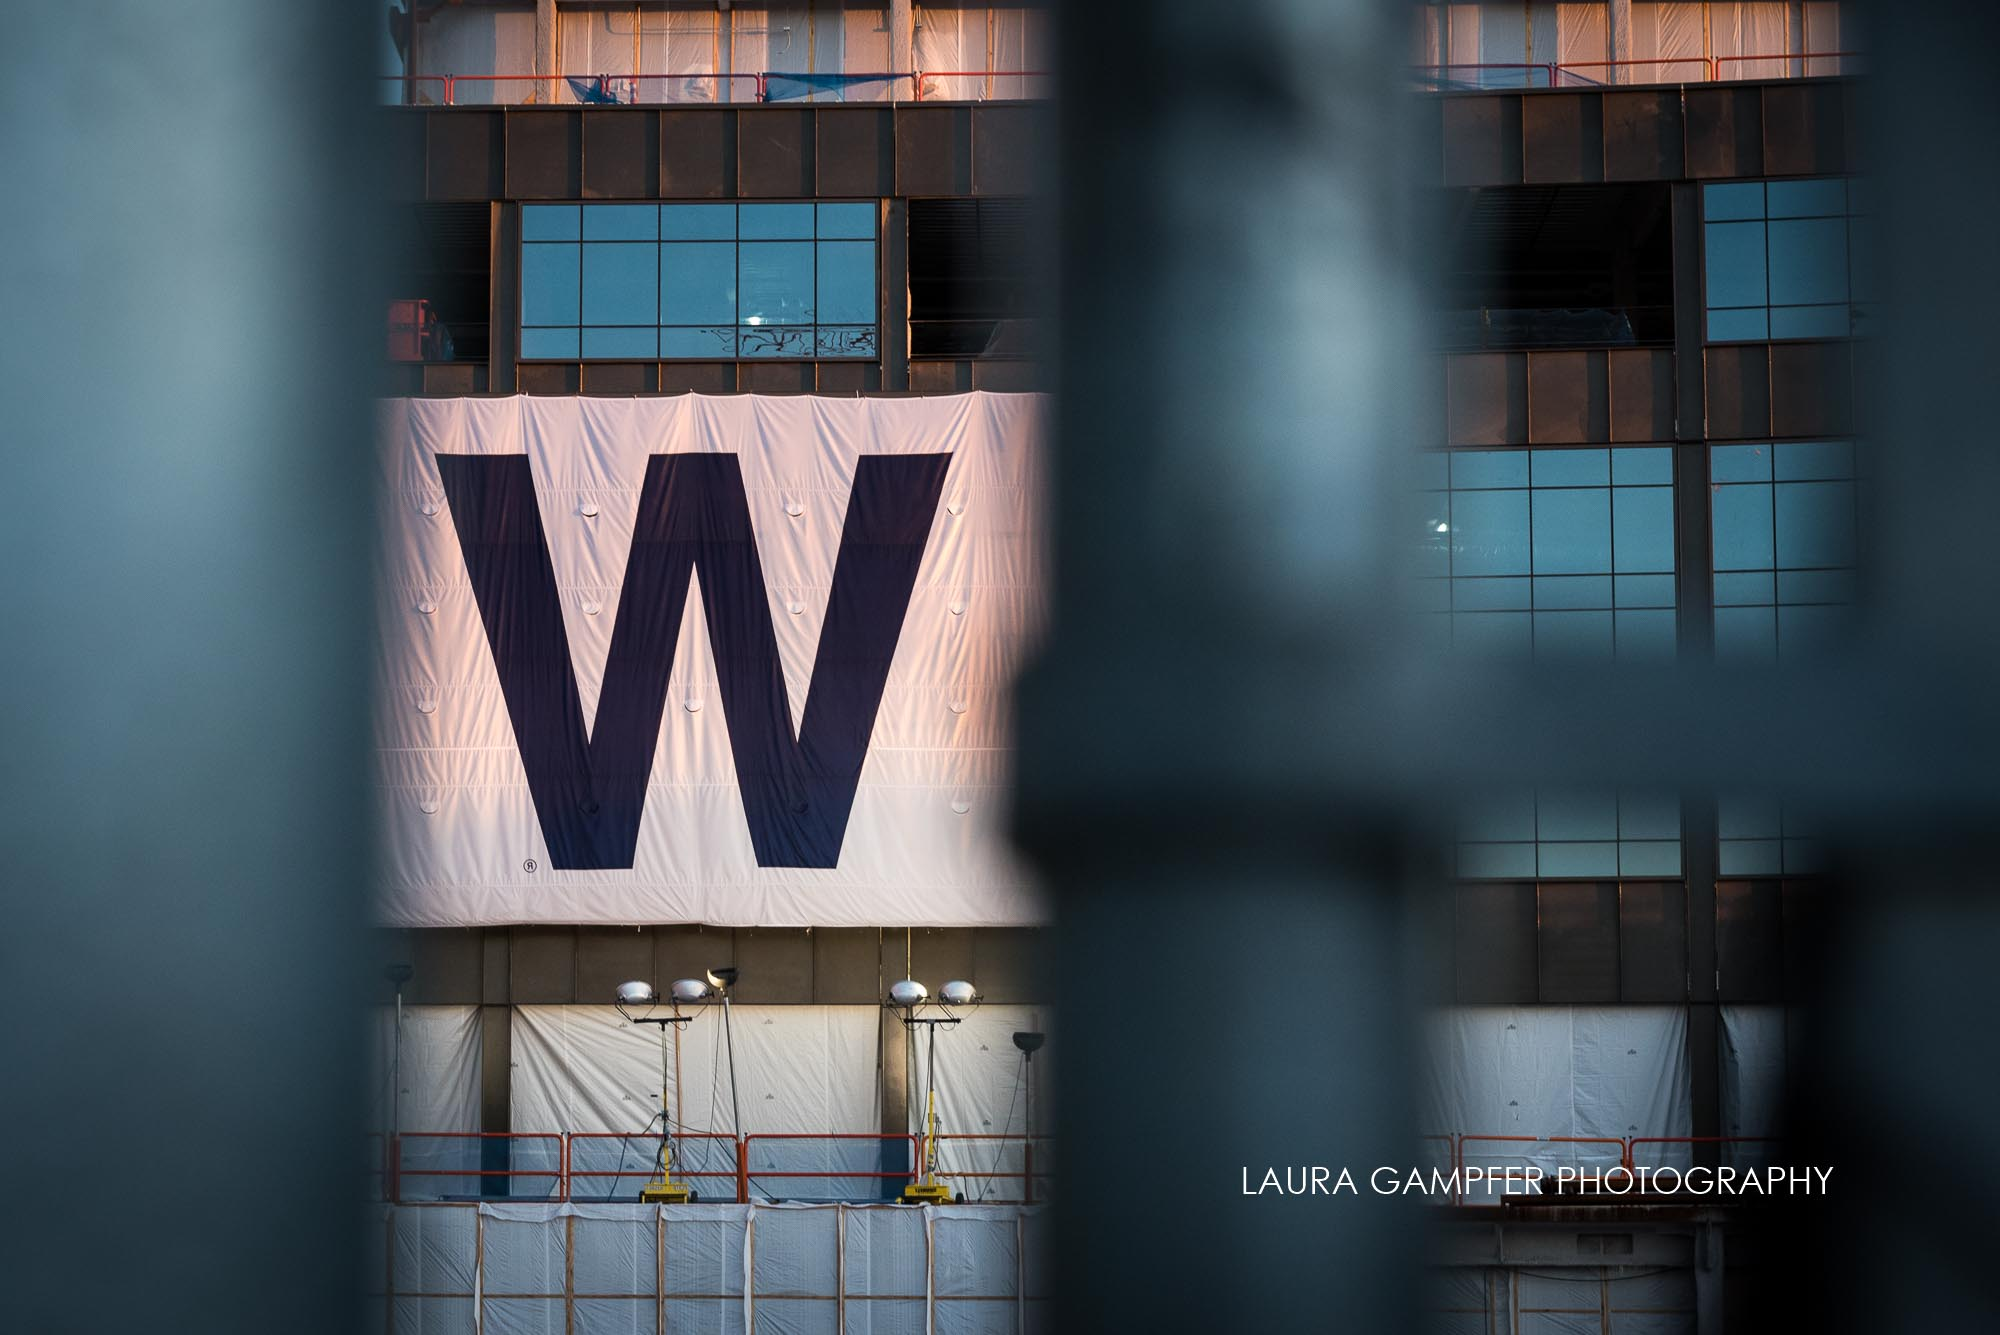 cubs-win-wrigley-field-2016